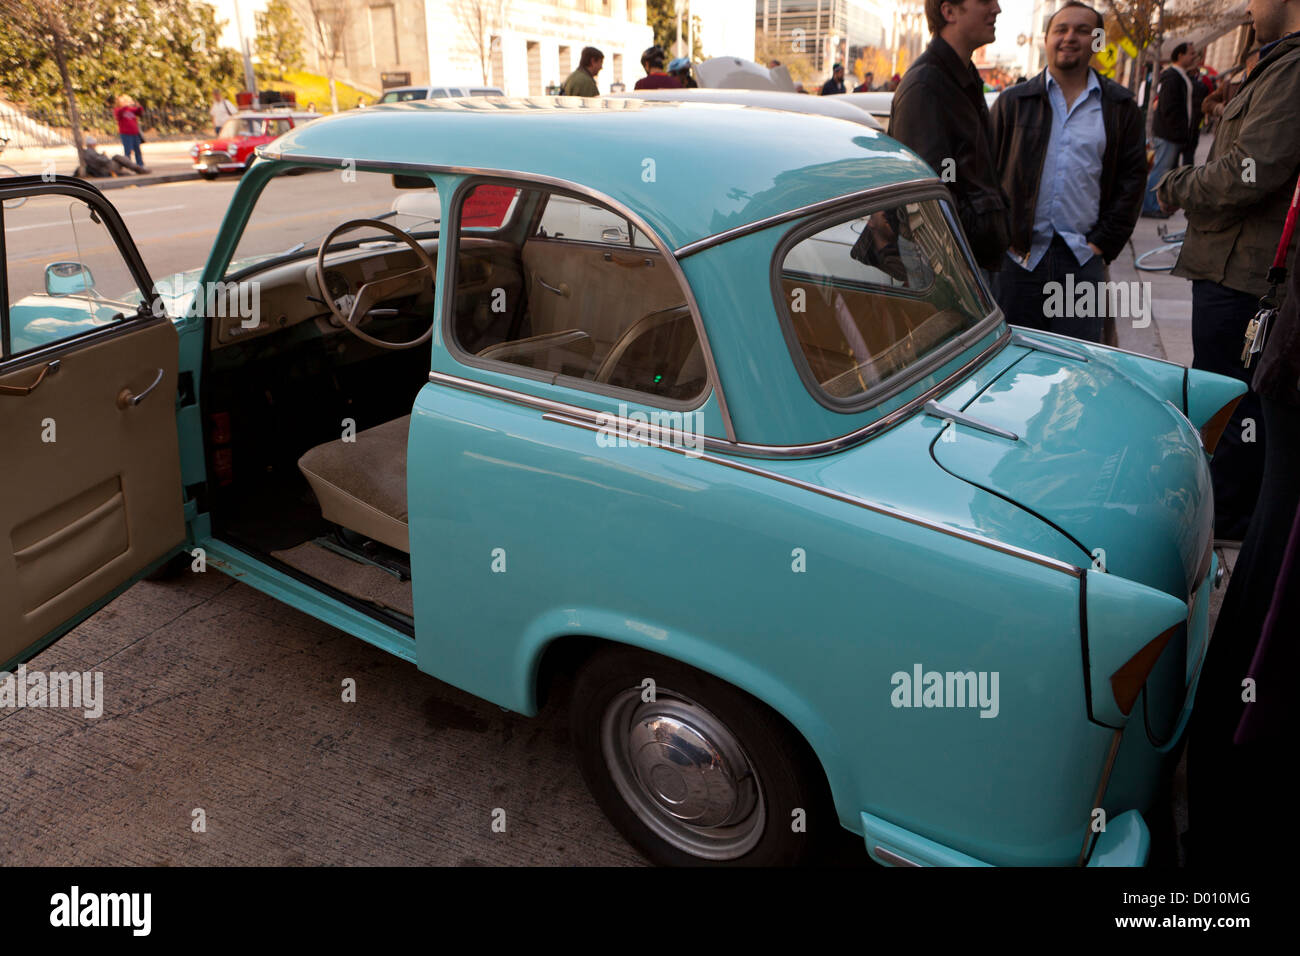 1960's East German two-stroke engine car Trabant profile - Stock Image